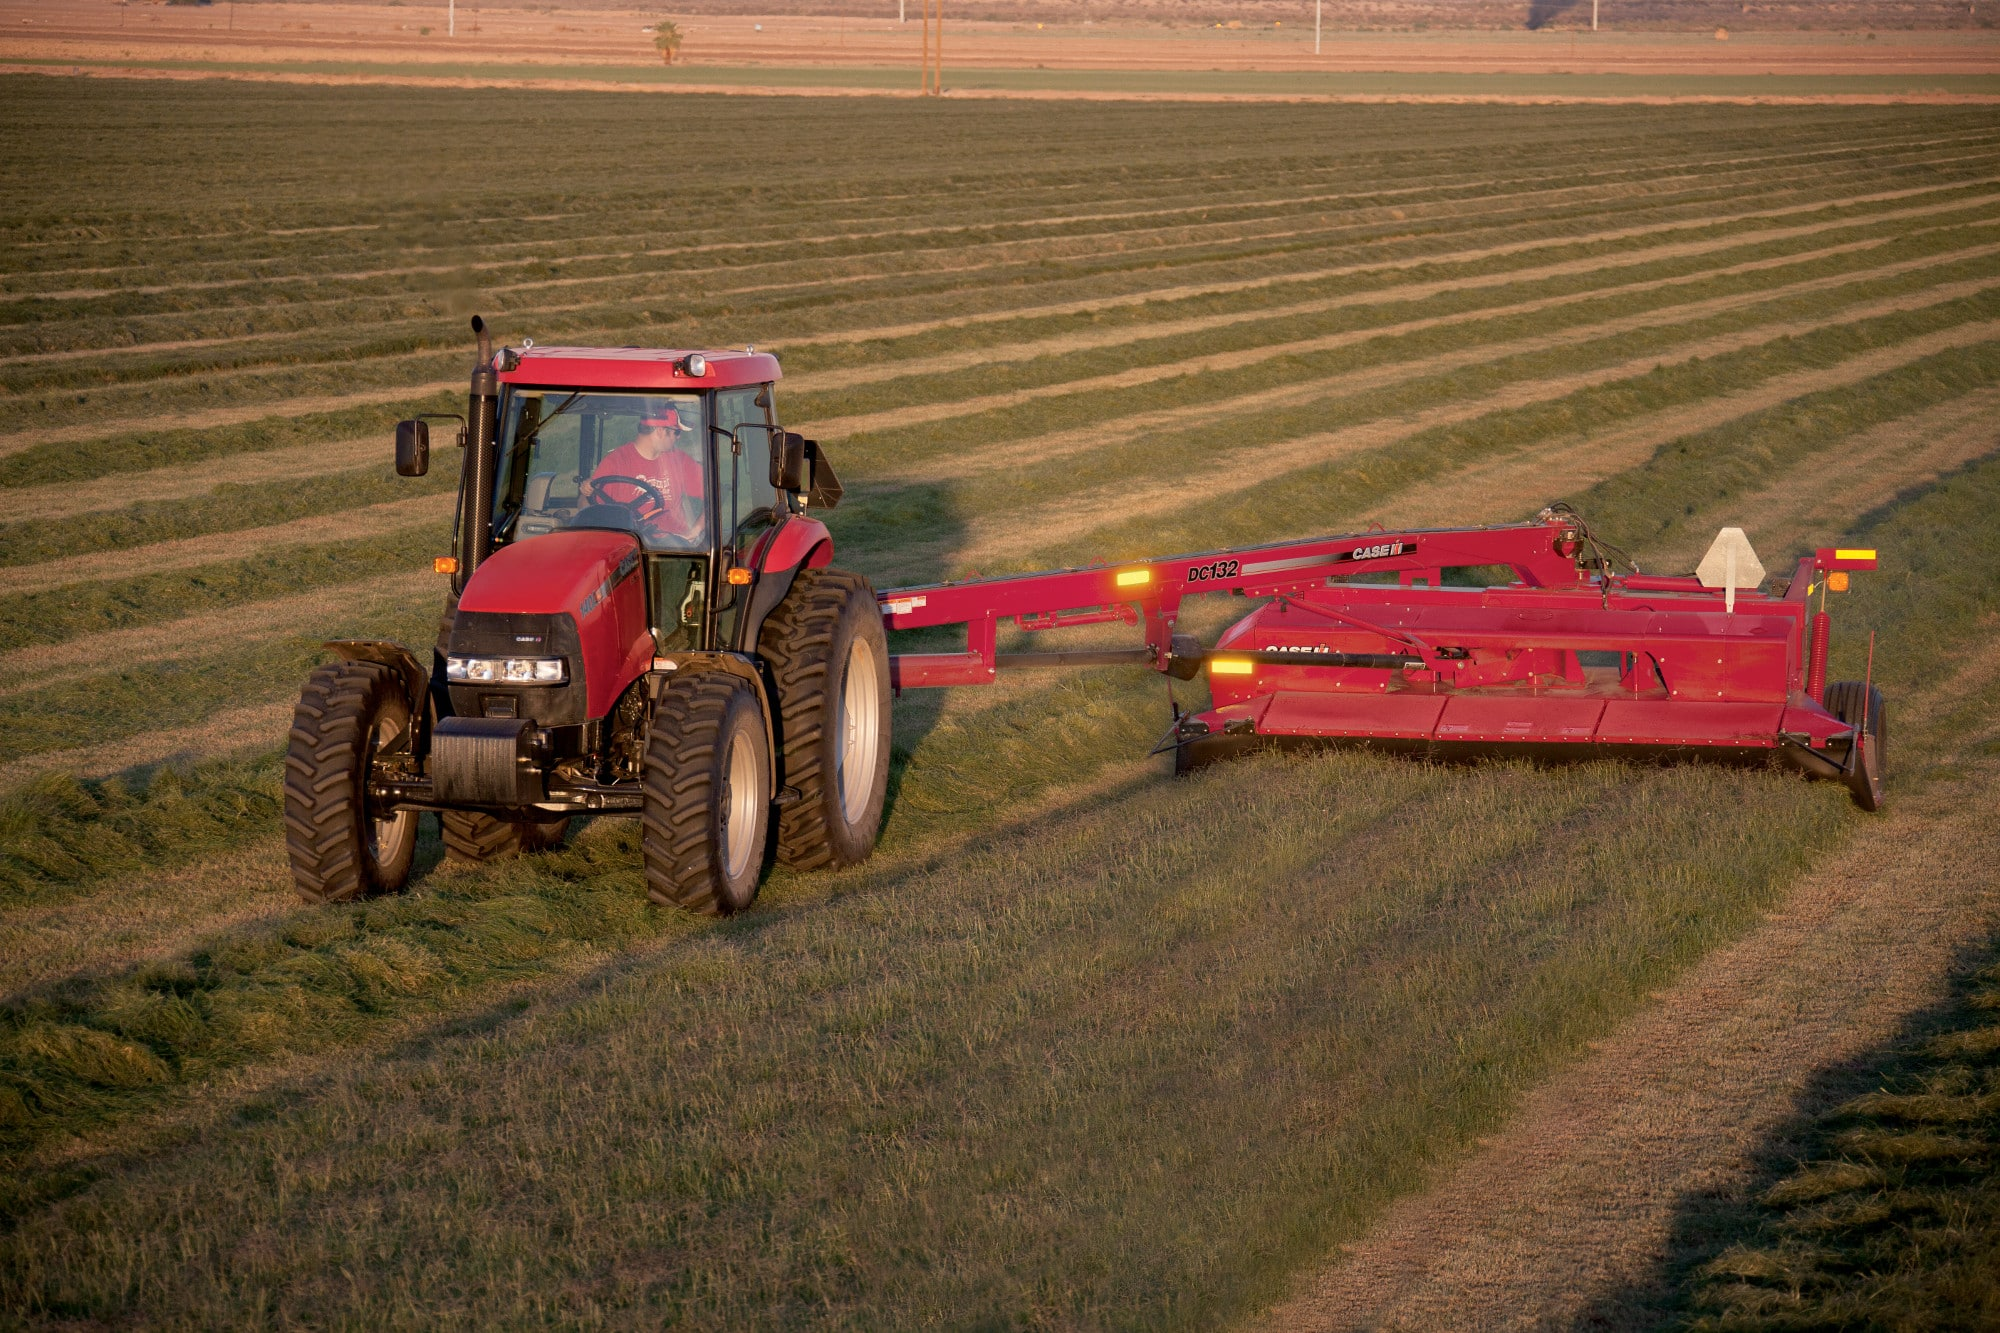 Dc132 Rotary Disc Mower Conditioners